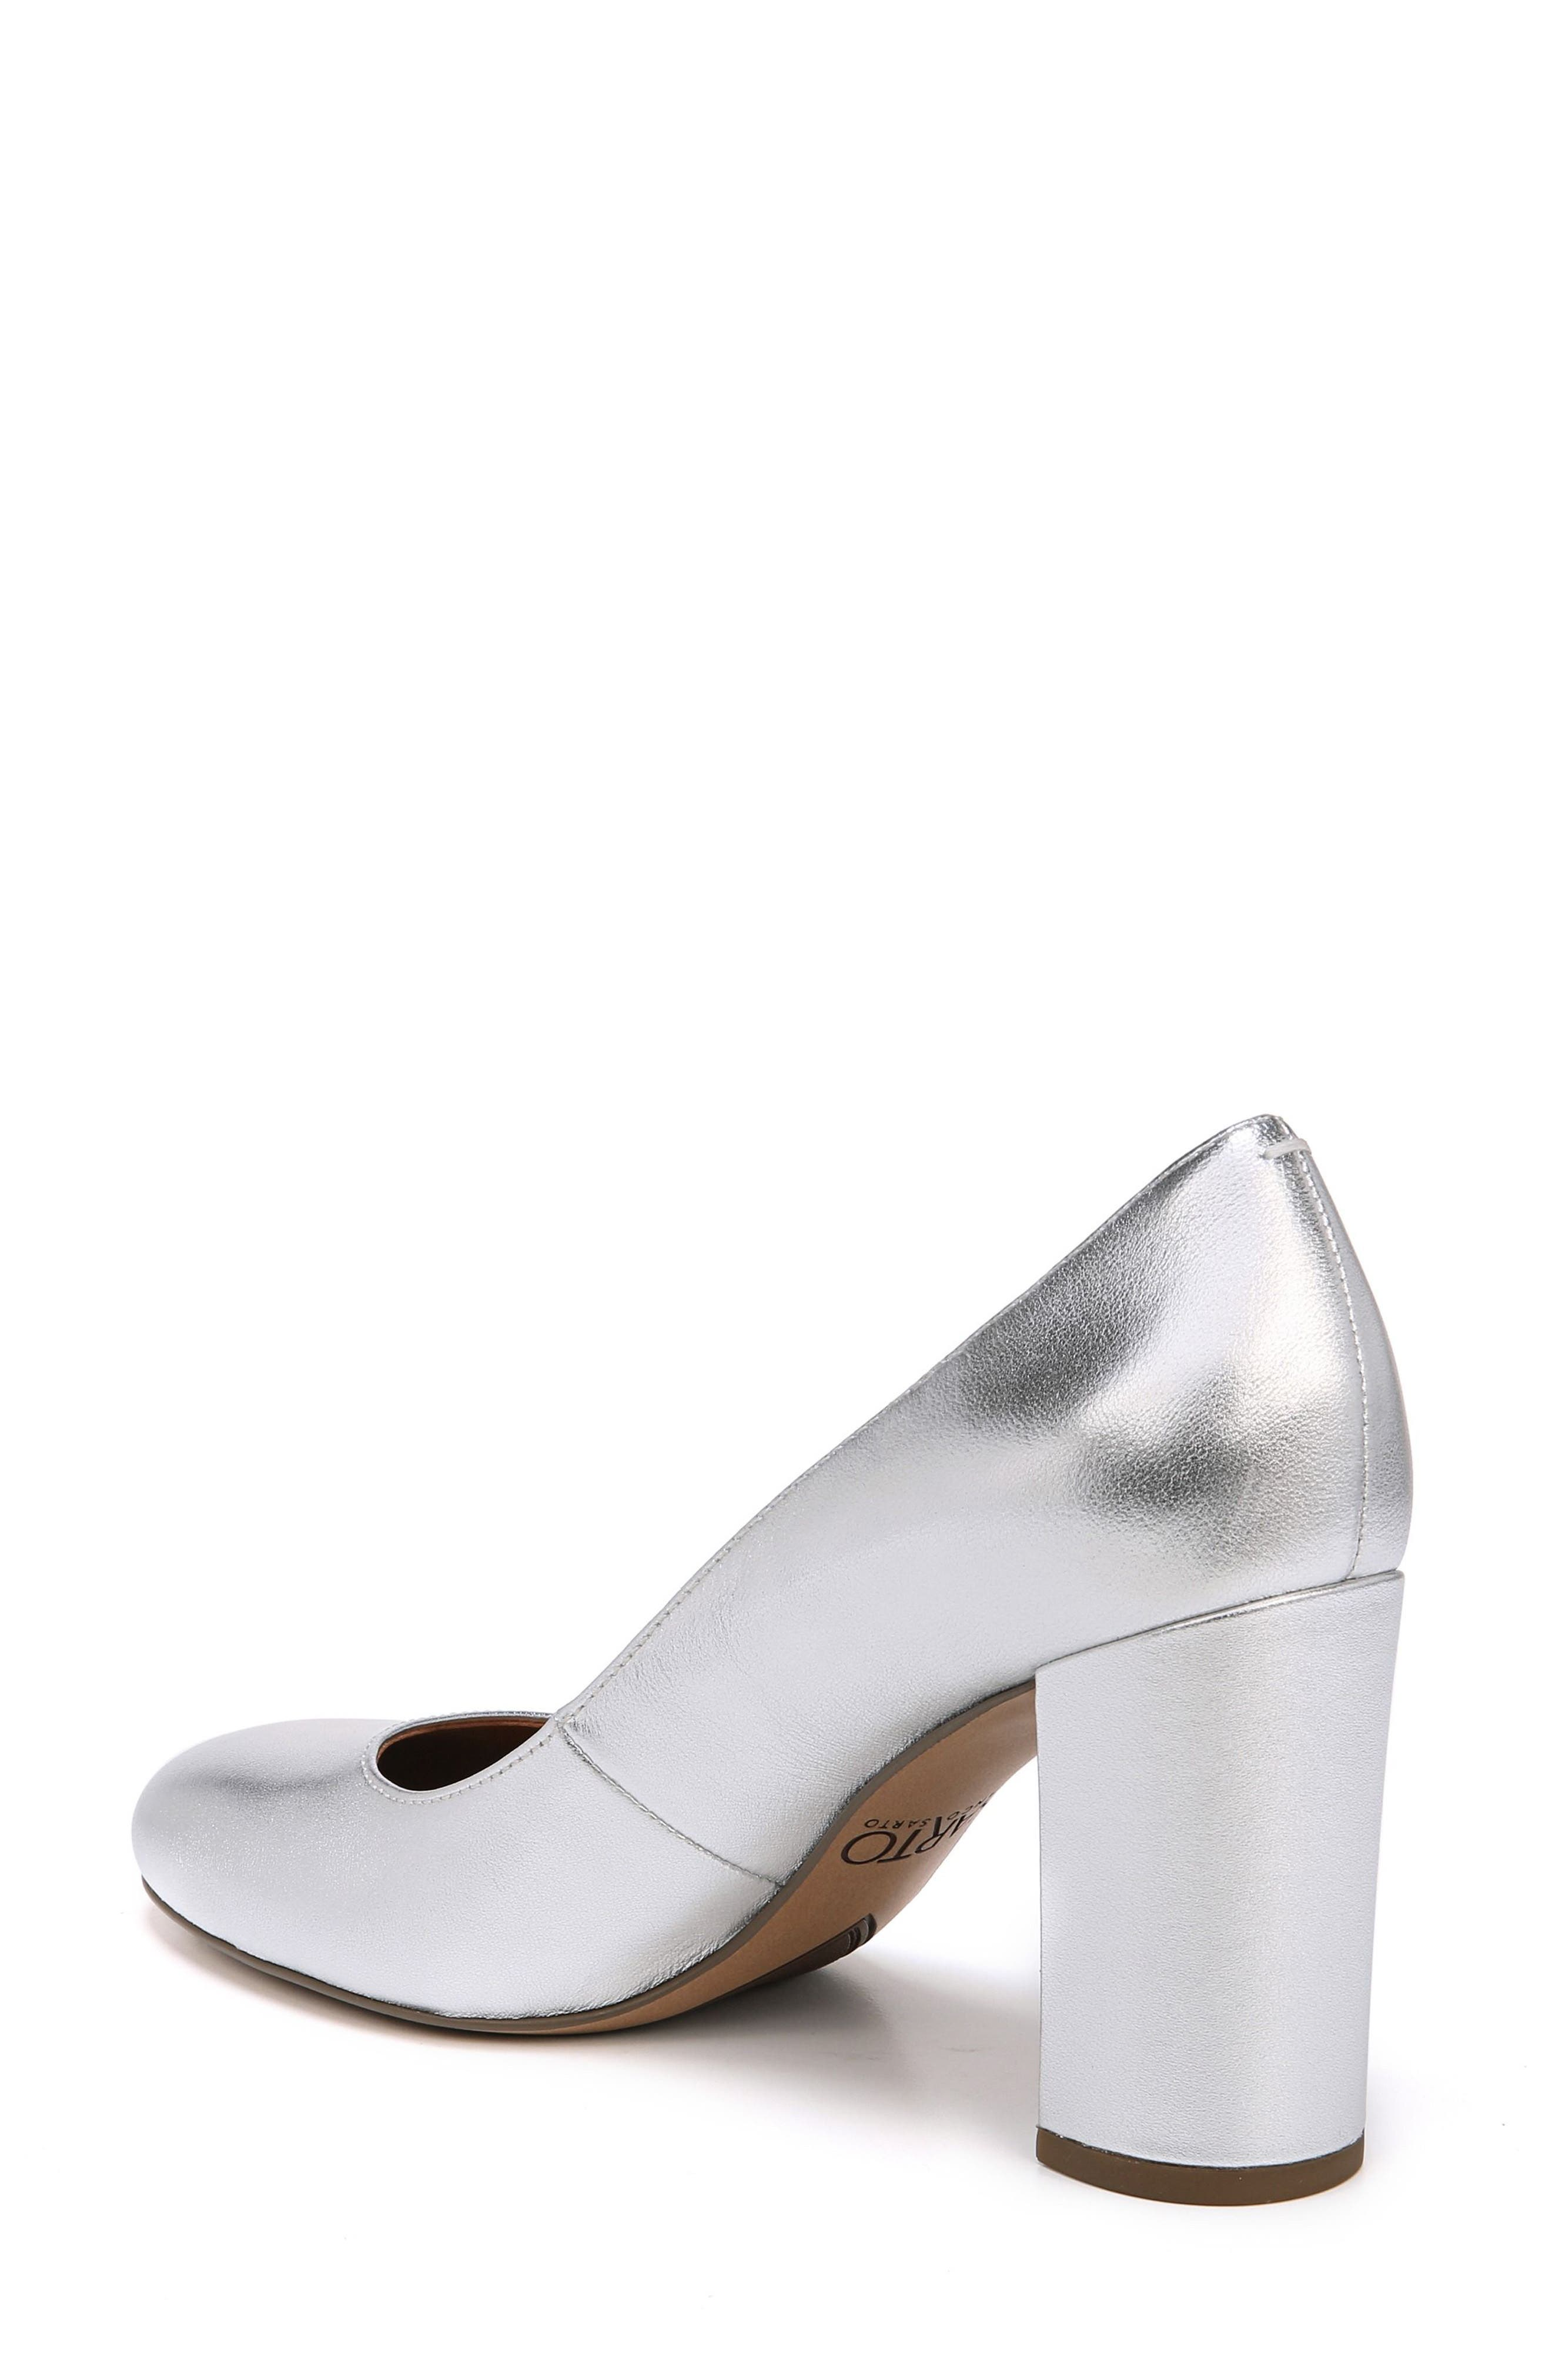 Aziza Block Heel Pump,                             Alternate thumbnail 2, color,                             Silver Leather